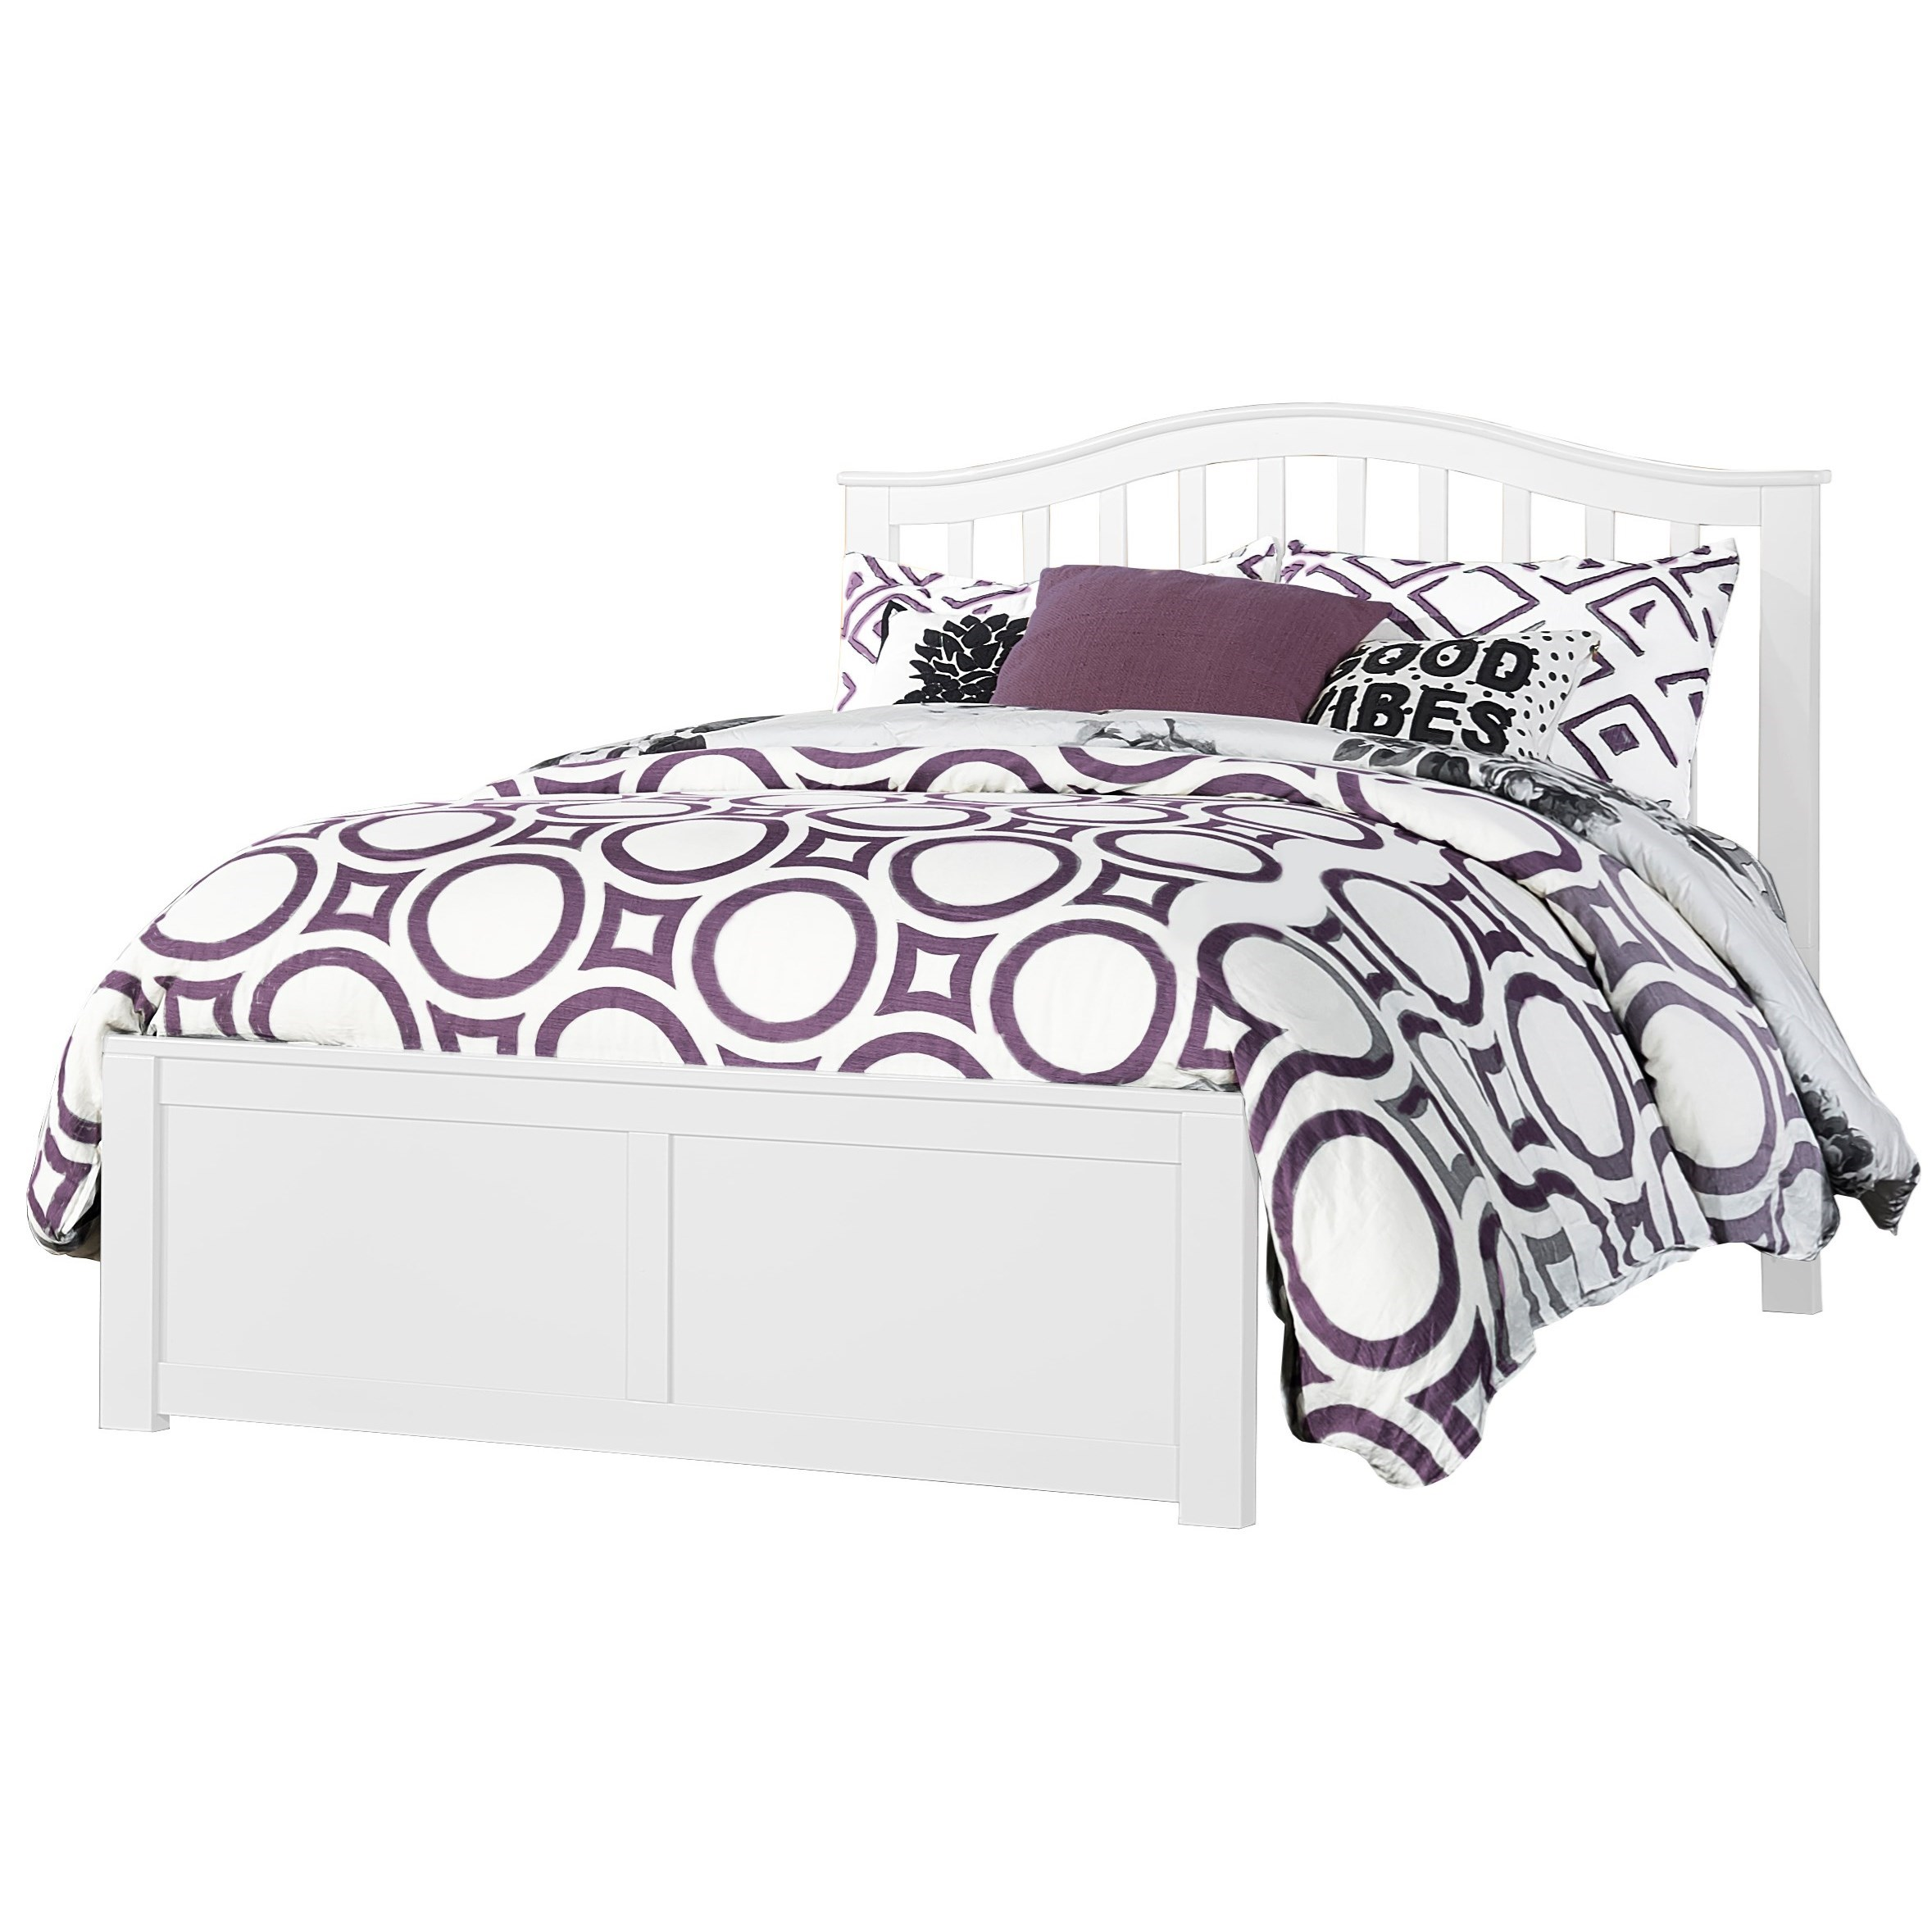 Schoolhouse 4.0 Full Arch Spindle Platform Bed by NE Kids at Darvin Furniture